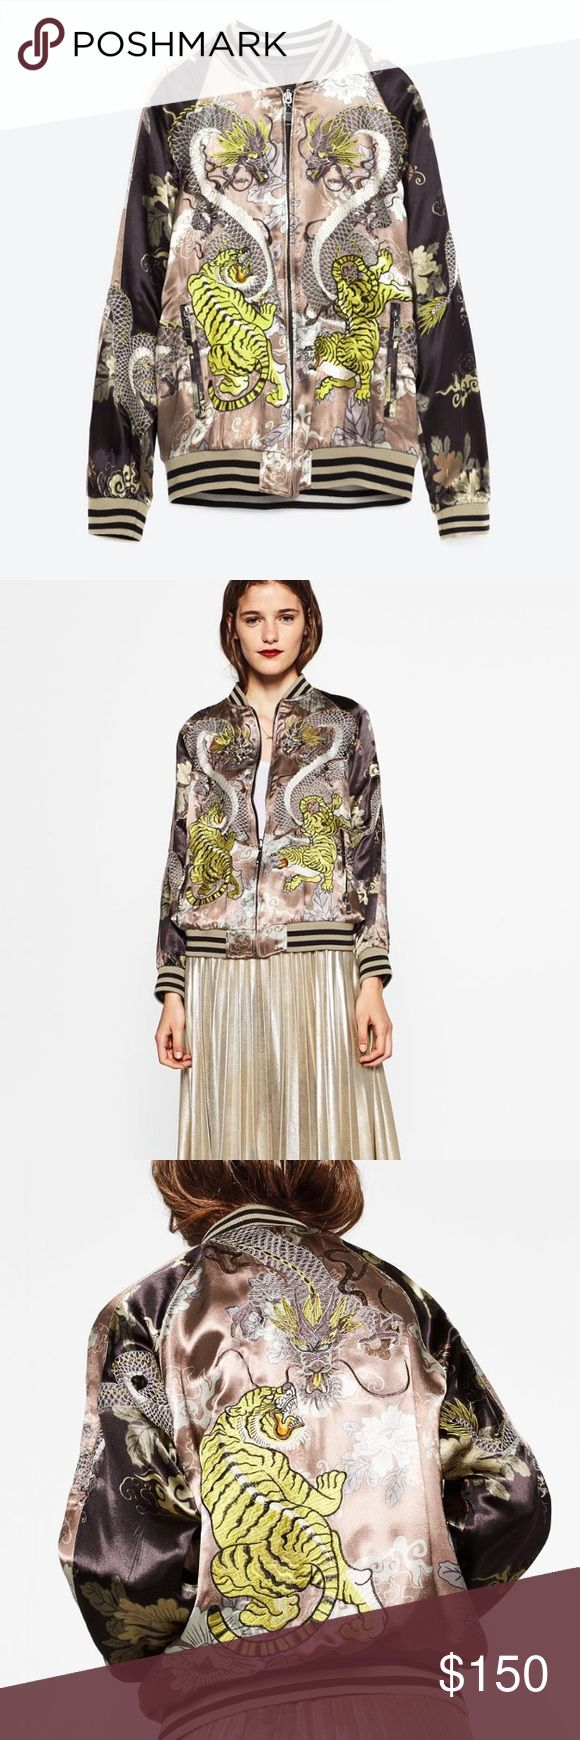 ZARA LIMITED EDITION EMBROIDERED BOMBER JACKET Brand new with tags, size small, embroidered and printed, reversible, cuffed sleeves, pockets in front. Zara Jackets & Coats